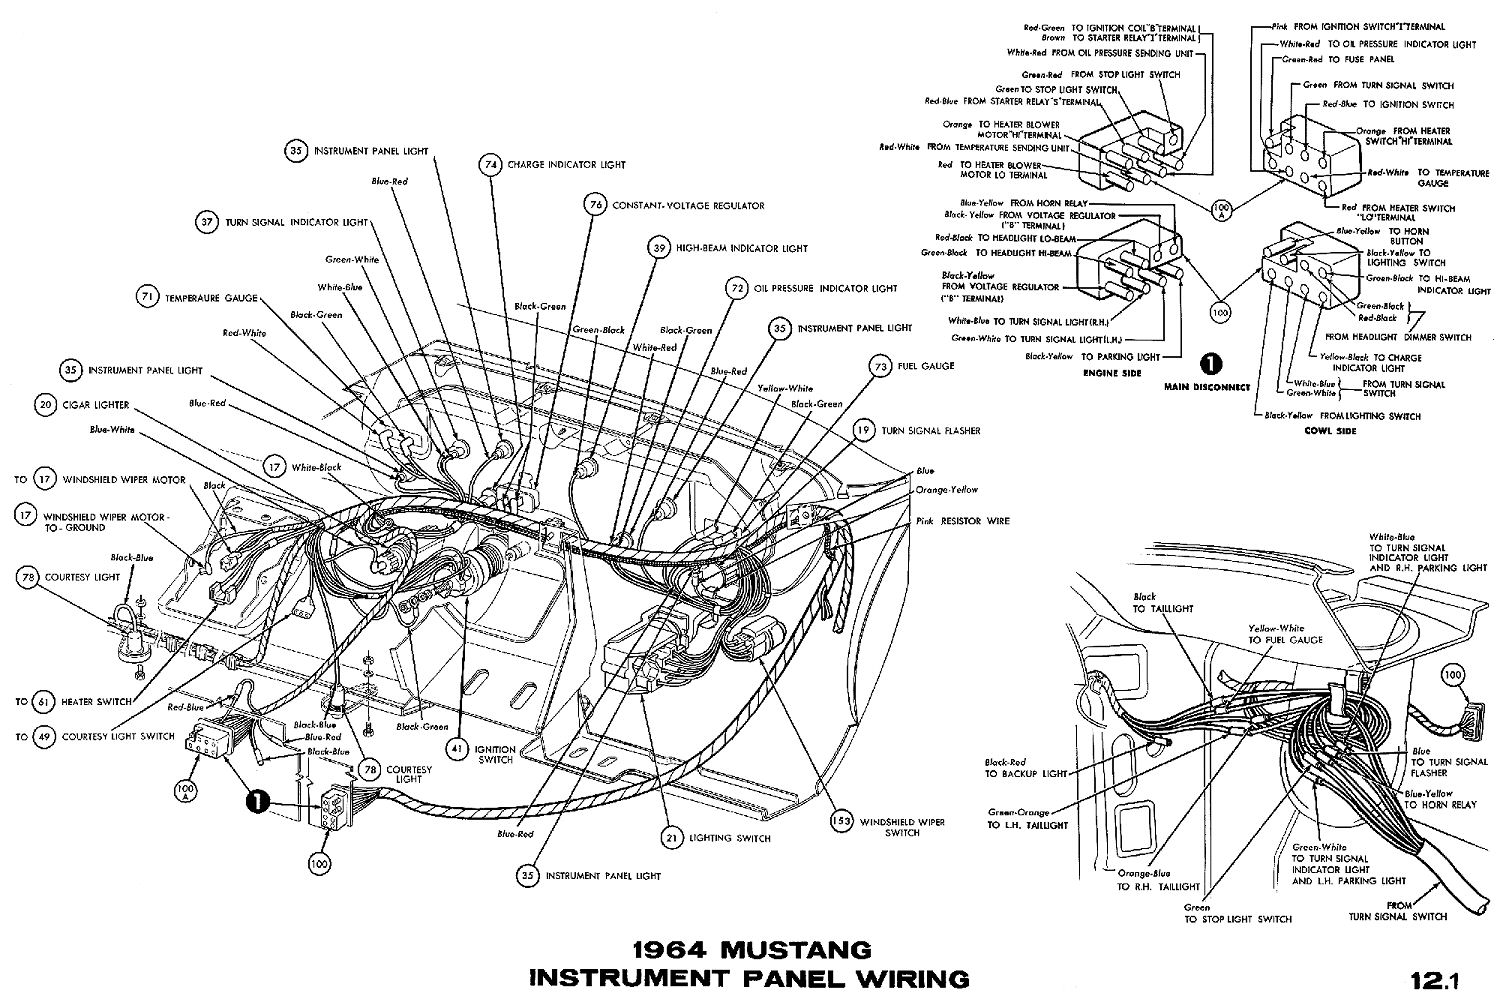 1964b 1969 mustang wiring diagram 2011 mustang wiring diagram \u2022 free 2005 ford mustang instrument cluster wiring diagram at crackthecode.co